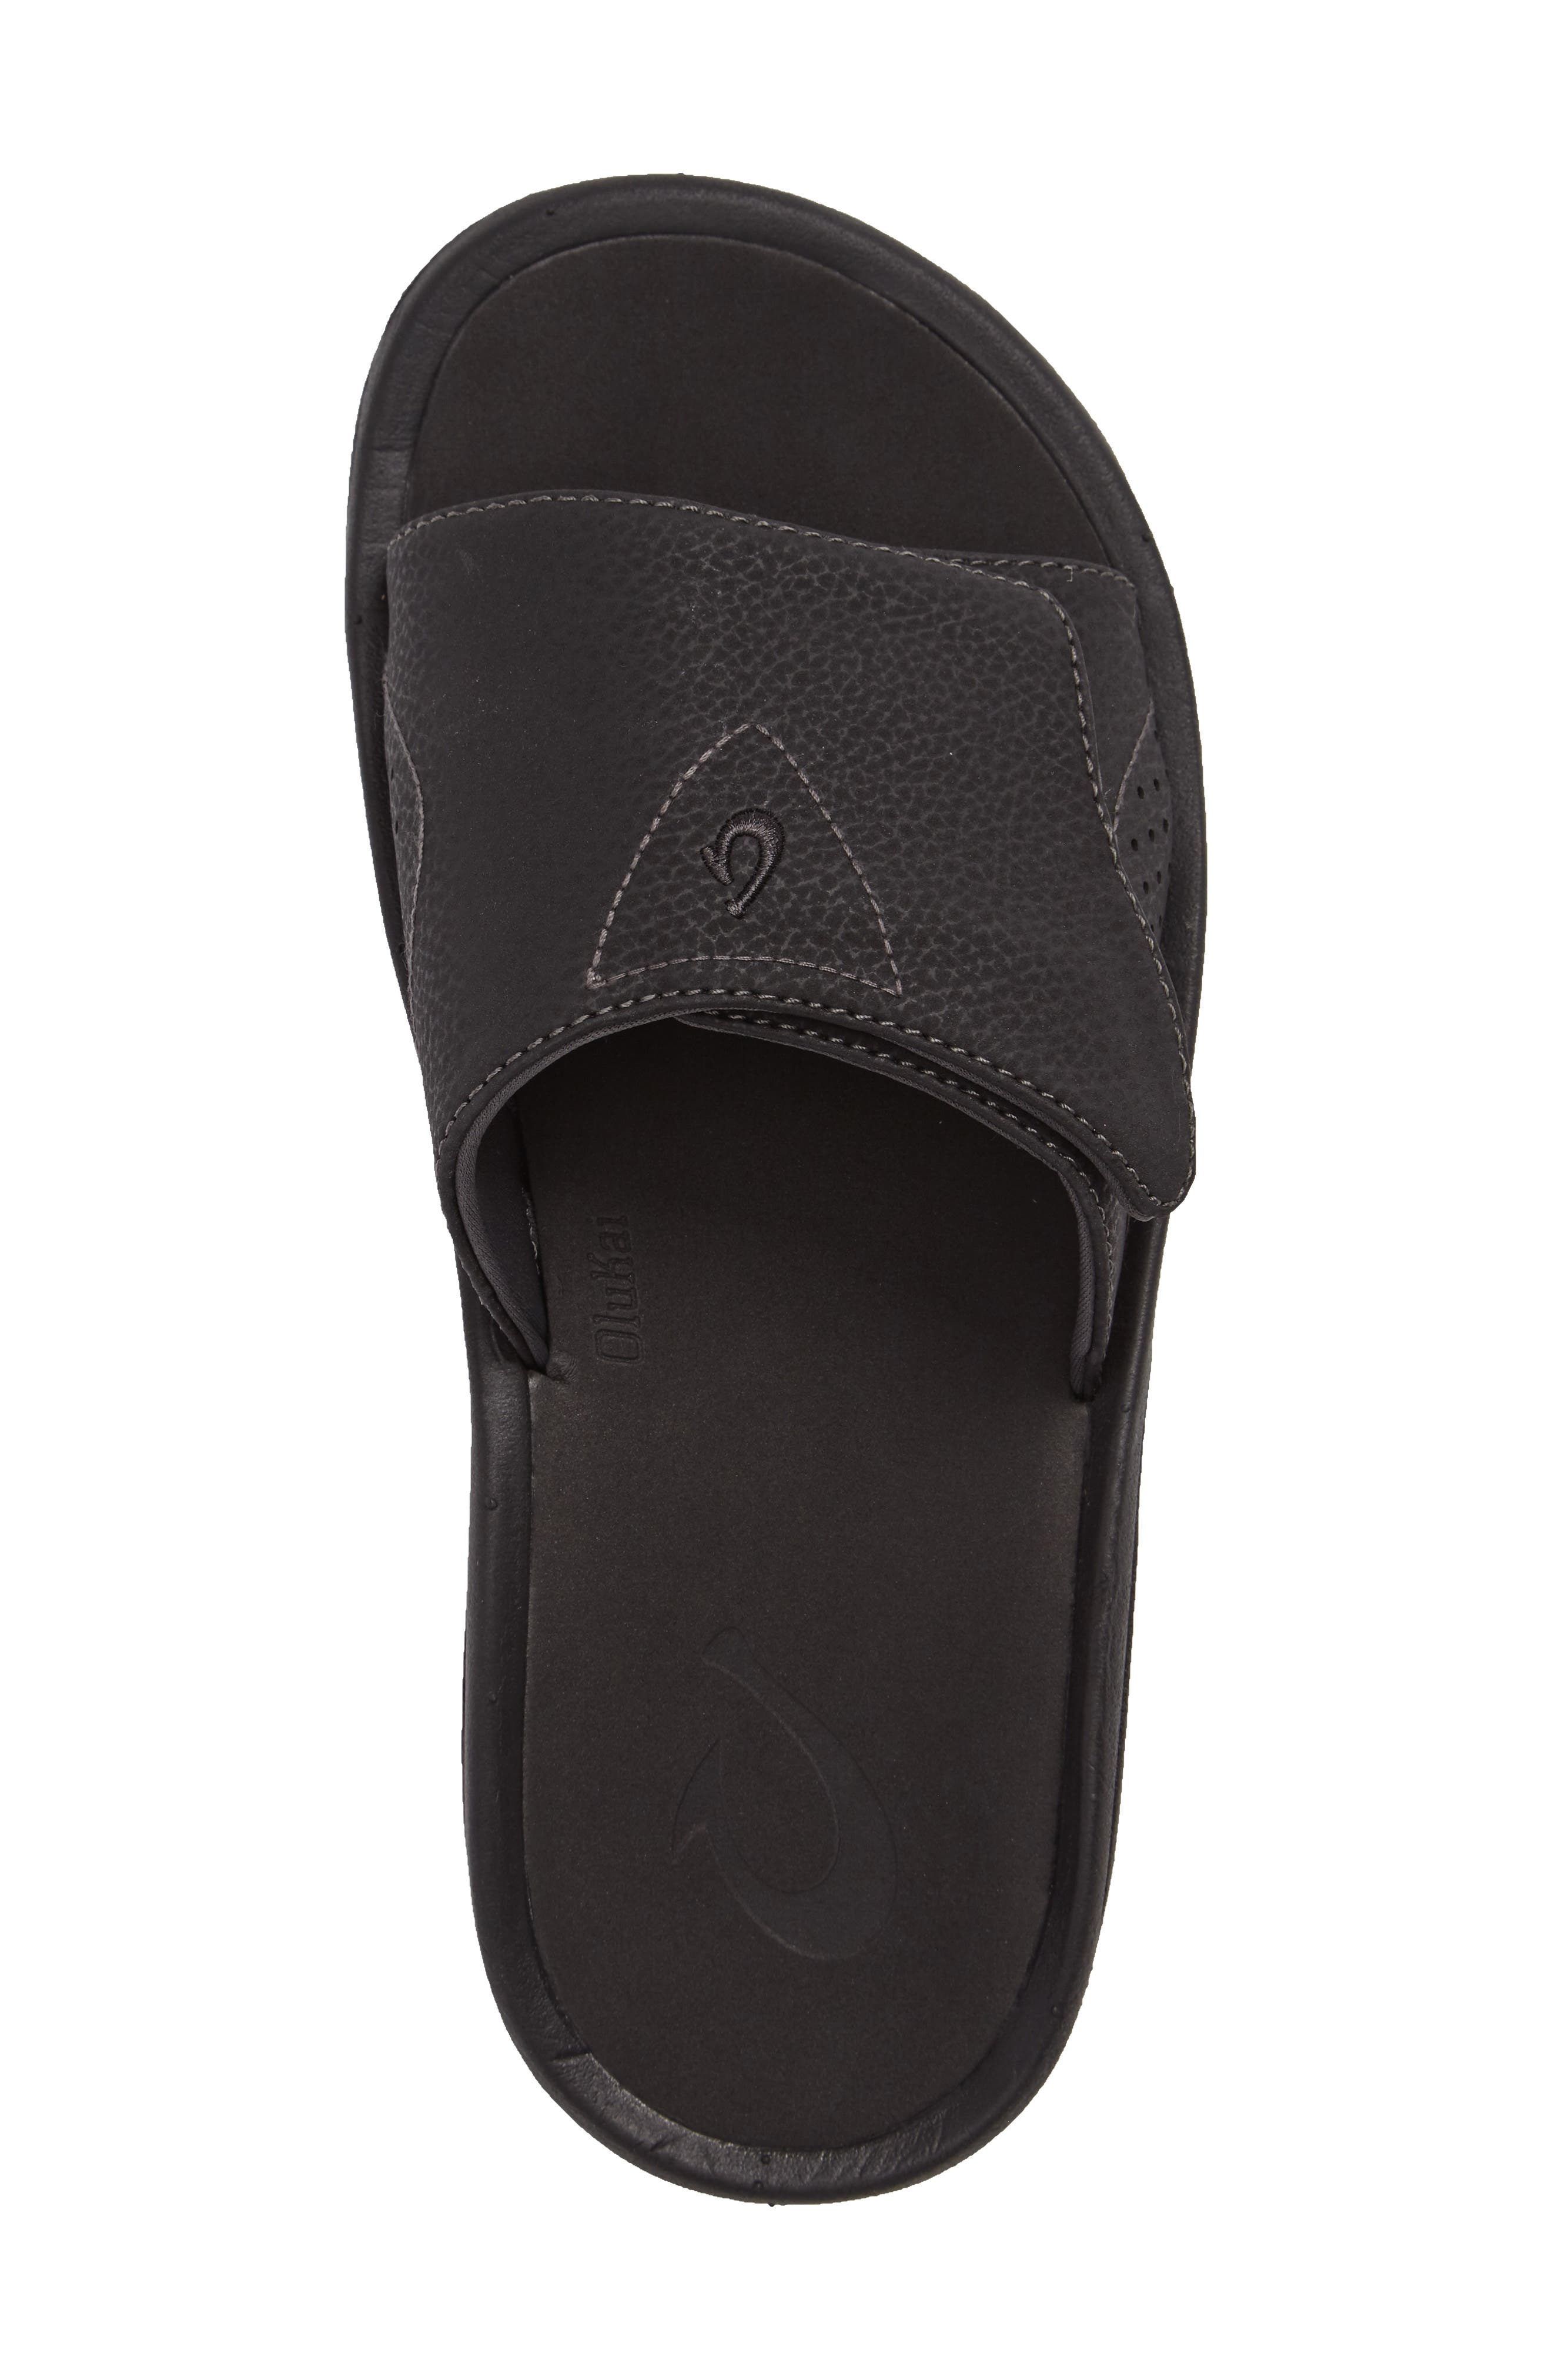 OLUKAI, Nalu Slide Sandal, Alternate thumbnail 3, color, BLACK/ BLACK